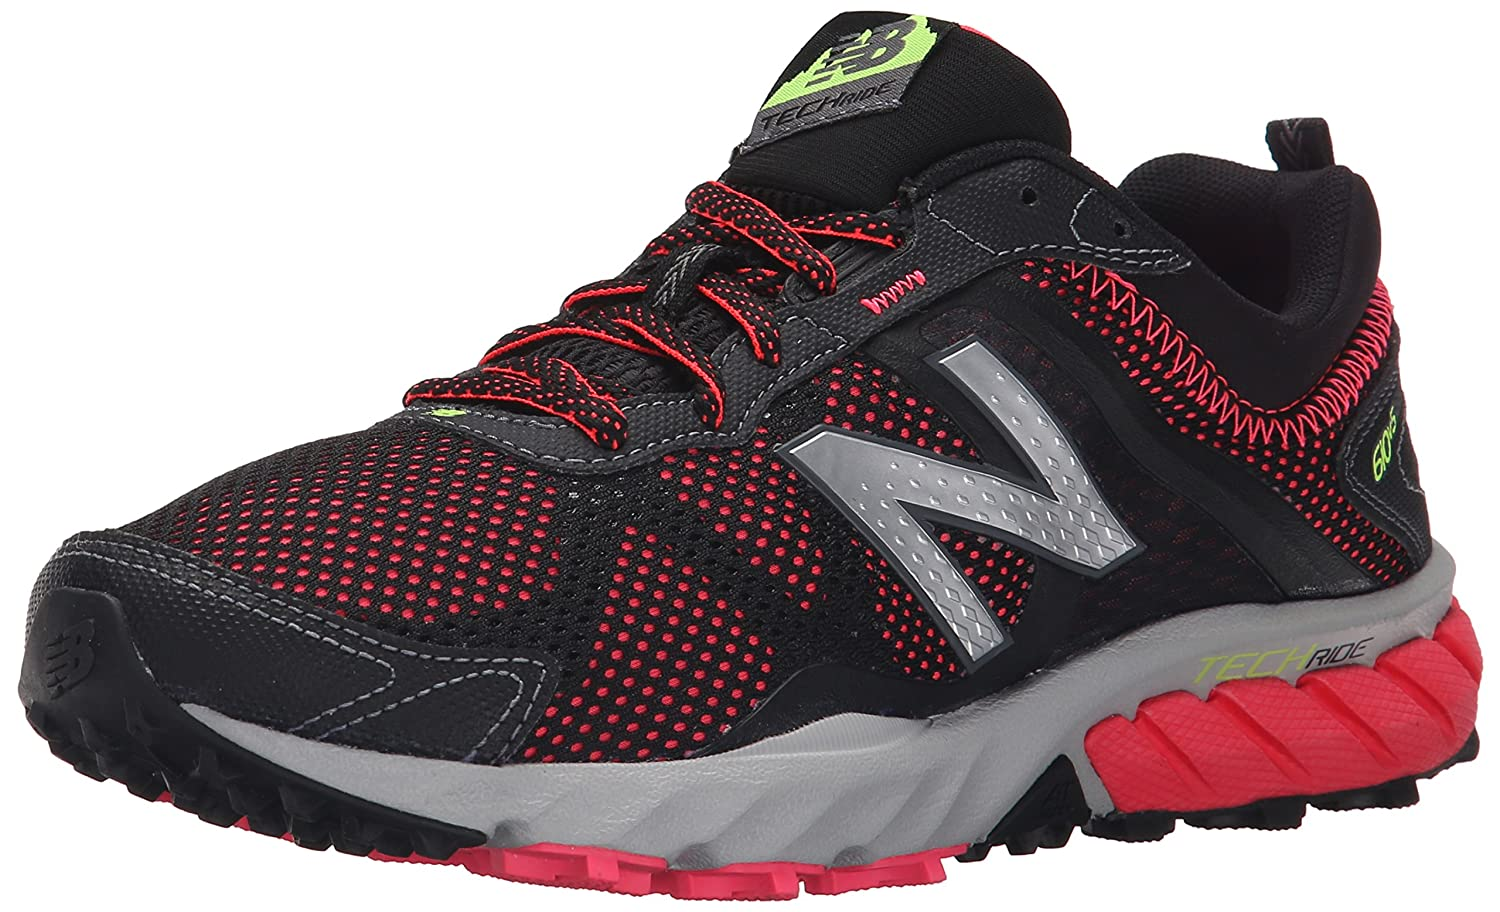 New Balance Women's WT610V5 Trail Shoe B00V3N78OO 6 B(M) US|Black/Pink